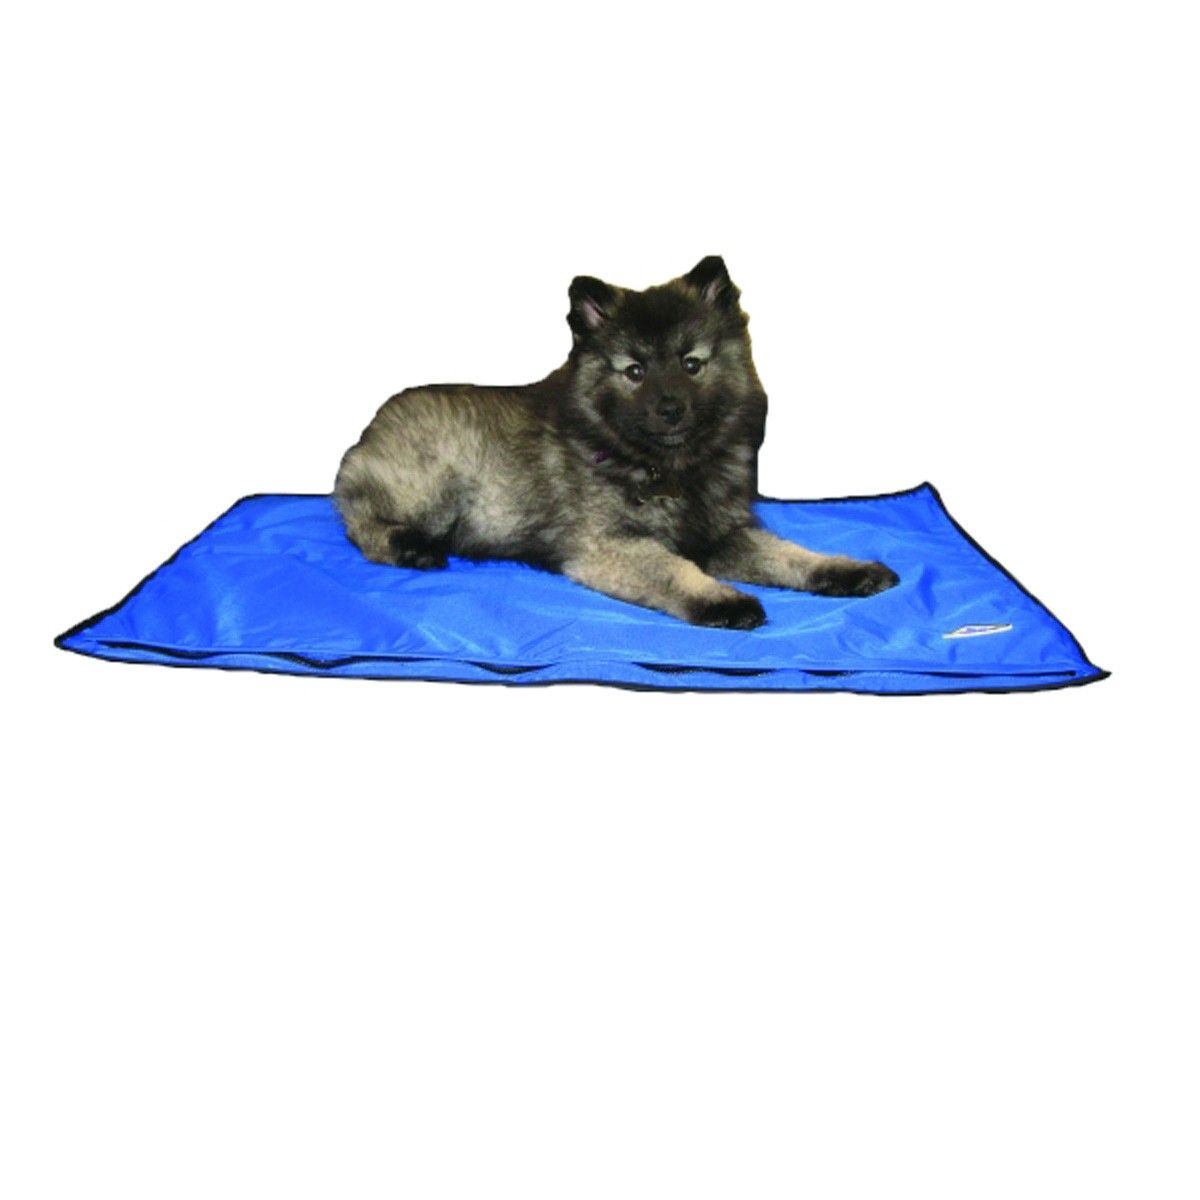 Pet Cooling Pad Pressure Activated Nontoxic Gel Cooling Pet Bed Cooling Therapy Helps Cool Overheated Exhausted Dogs Pets Chi Pet Cooling Pad Cool Pets Pet Bed